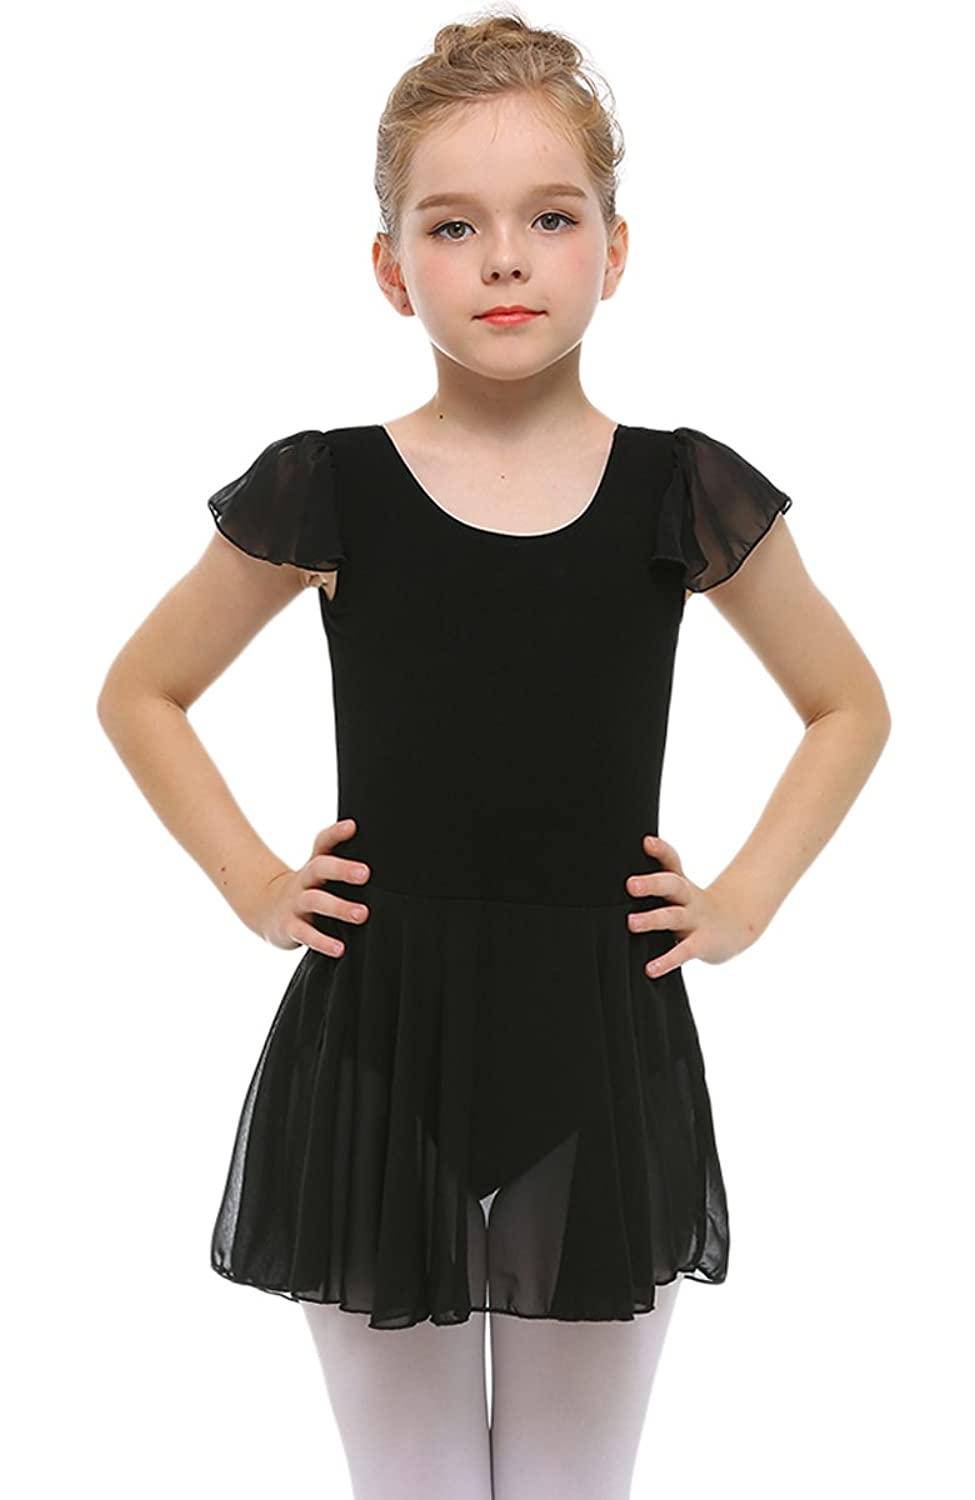 c02f88c4aa700 Super cute dress leotard made with high quality cotton materials. Great for  Dancing, Ballet, Gymnastics, ...